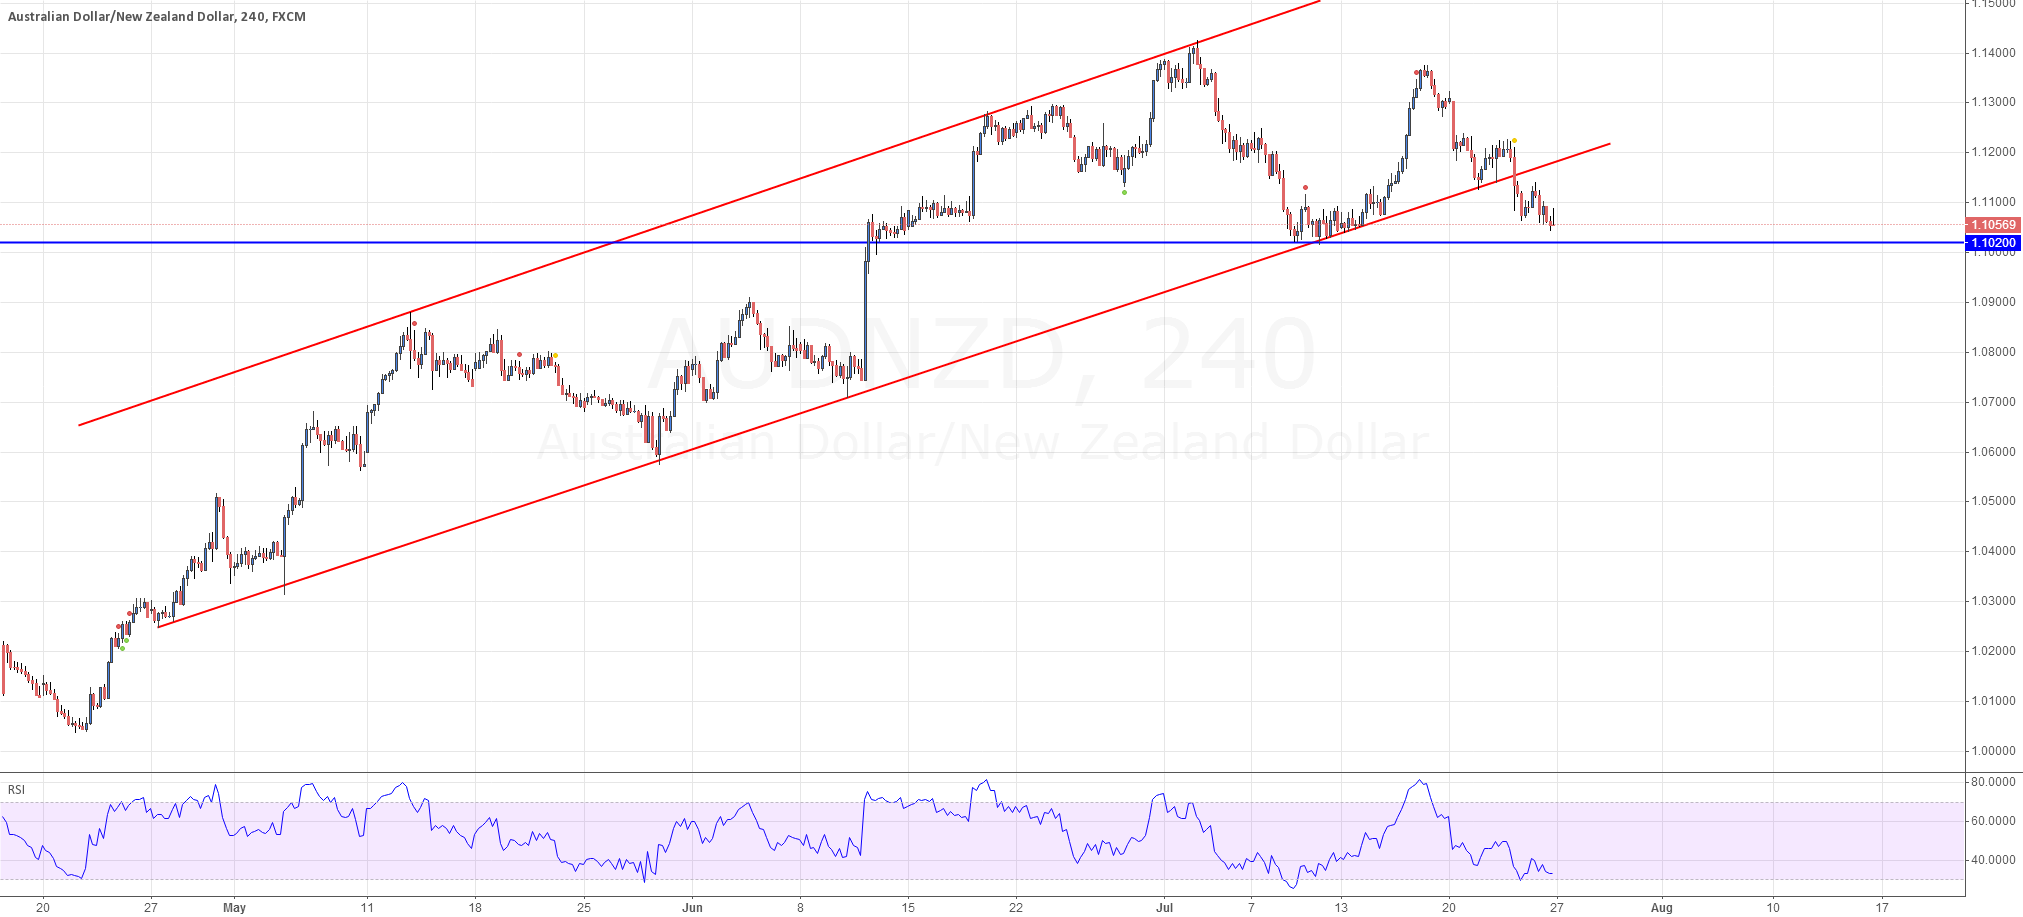 AUD/NZD is mor likely in a begining of Falling Trend